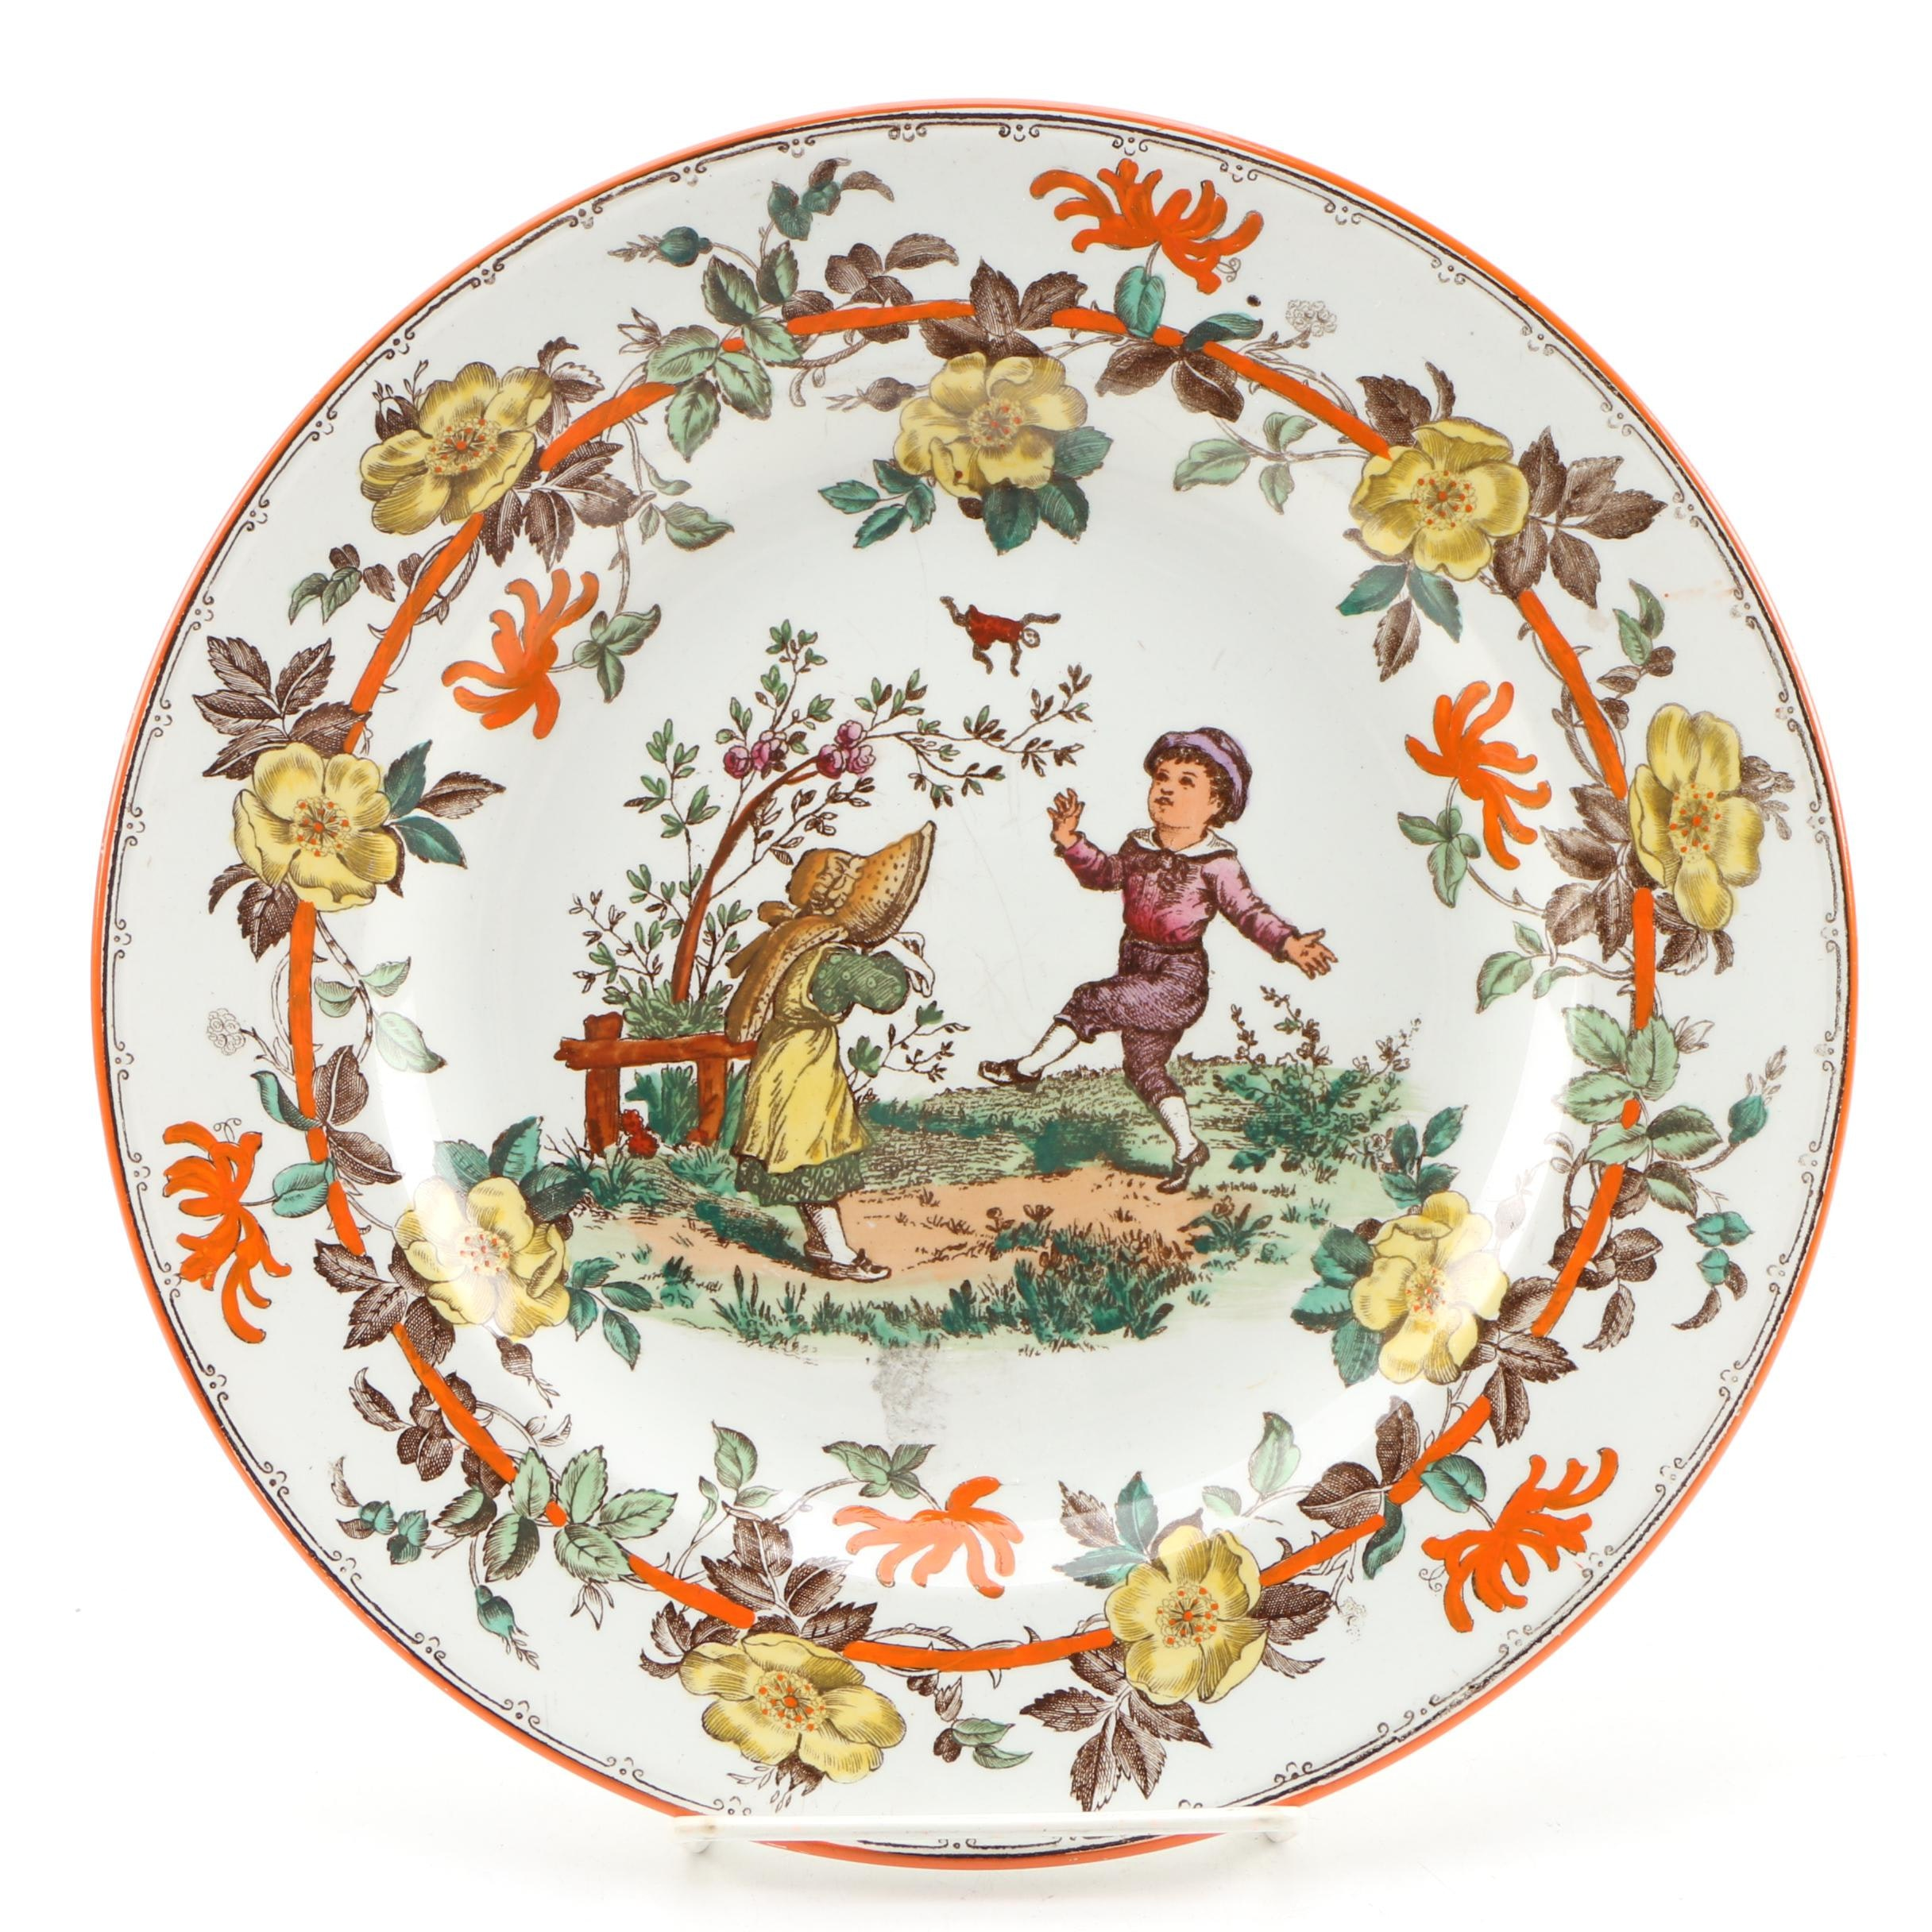 Wedgwood Ceramic Dinner Plate of Playing Children, Early 20th Century